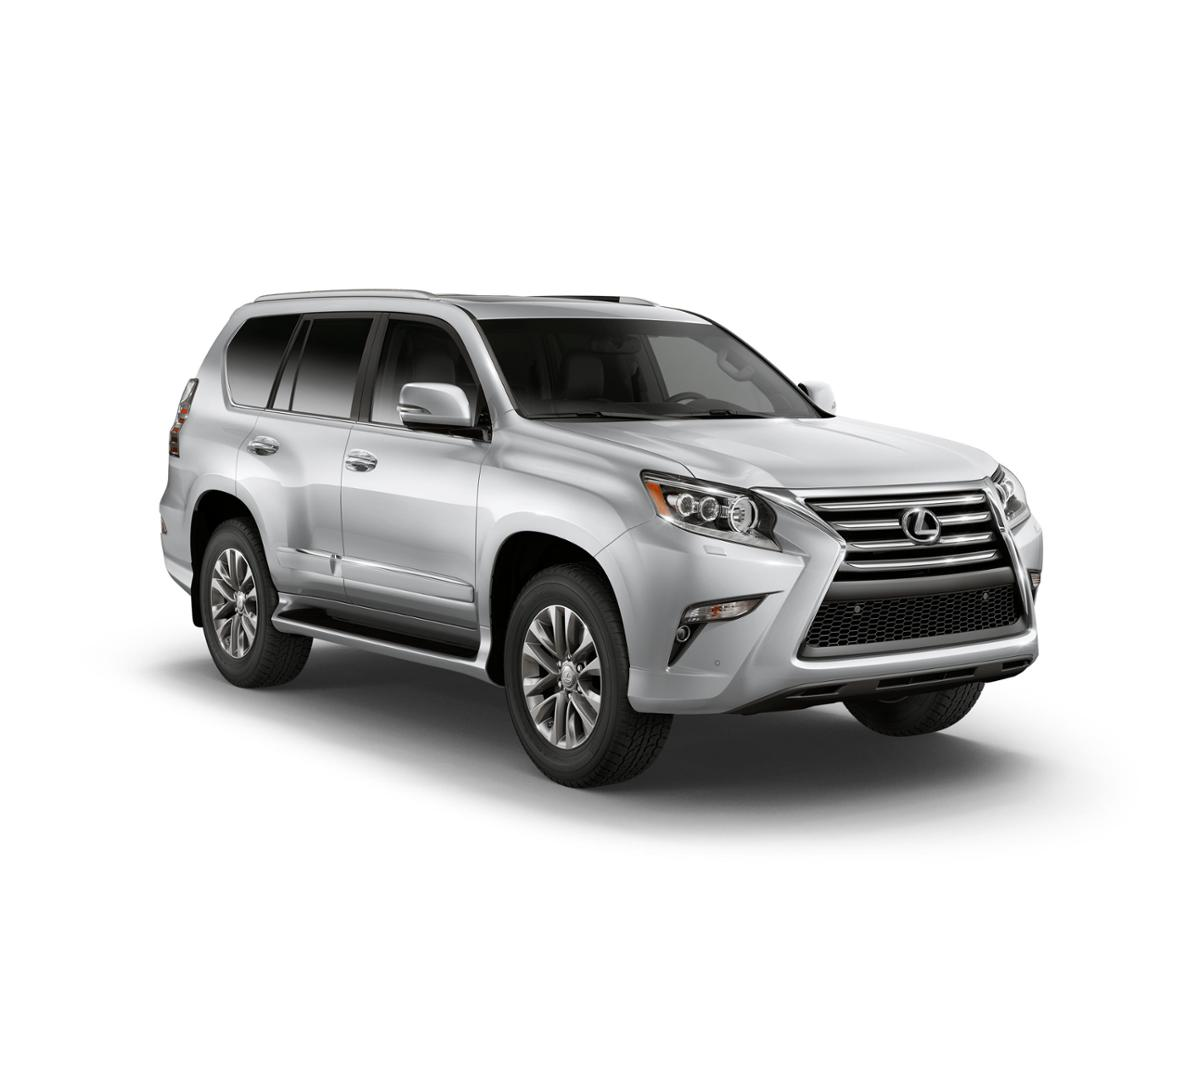 2019 Lexus GX 460 Vehicle Photo in Merriam, KS 66203